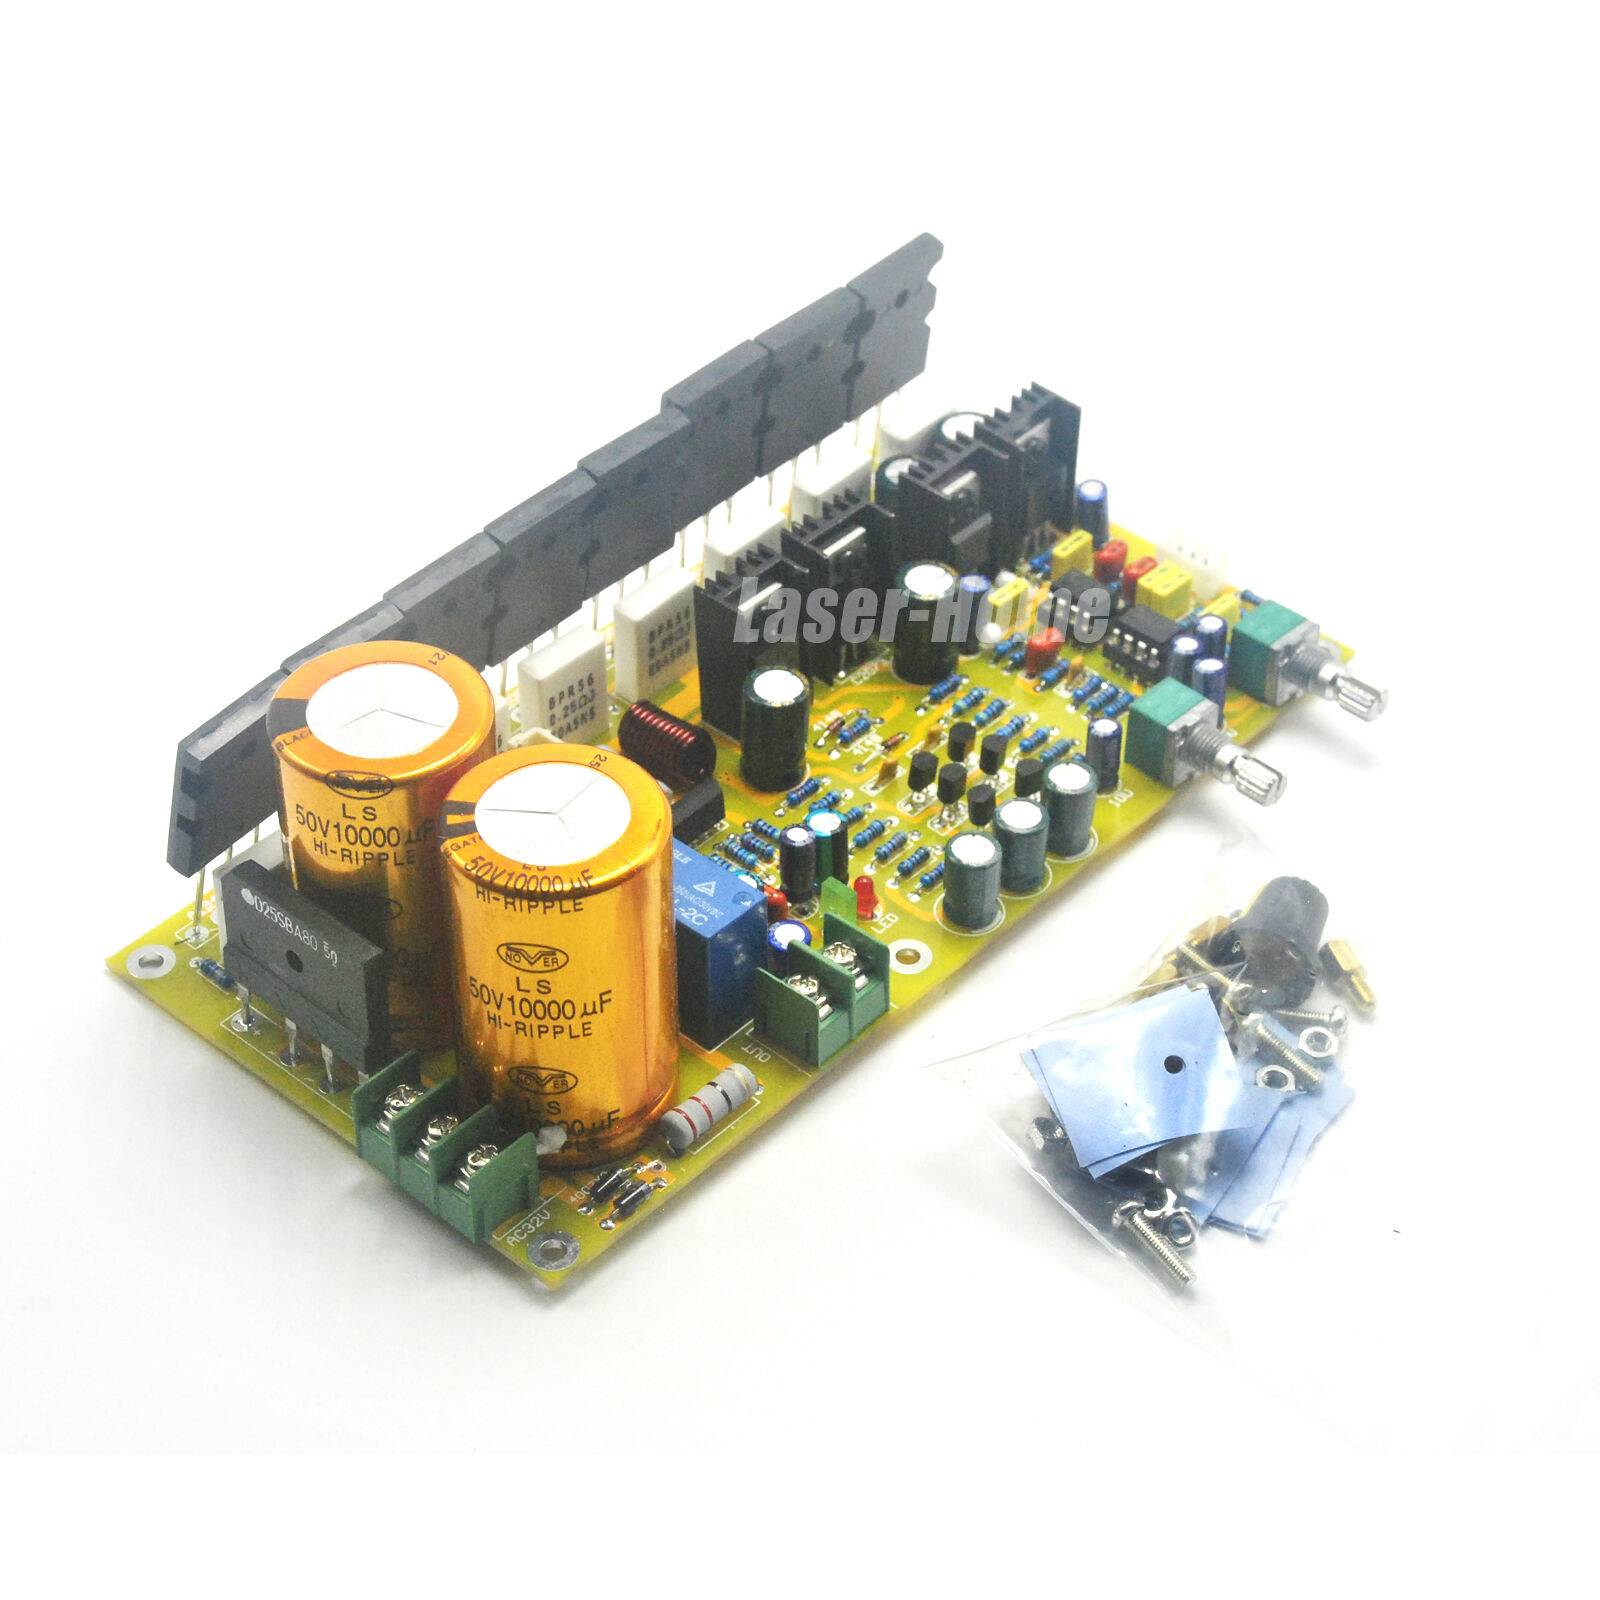 400w 30hz 200hz Amplifier Board High Power Active Subwoofer Pure 1200w Circuit Sanken Electronic Bass 1 Of 5free Shipping